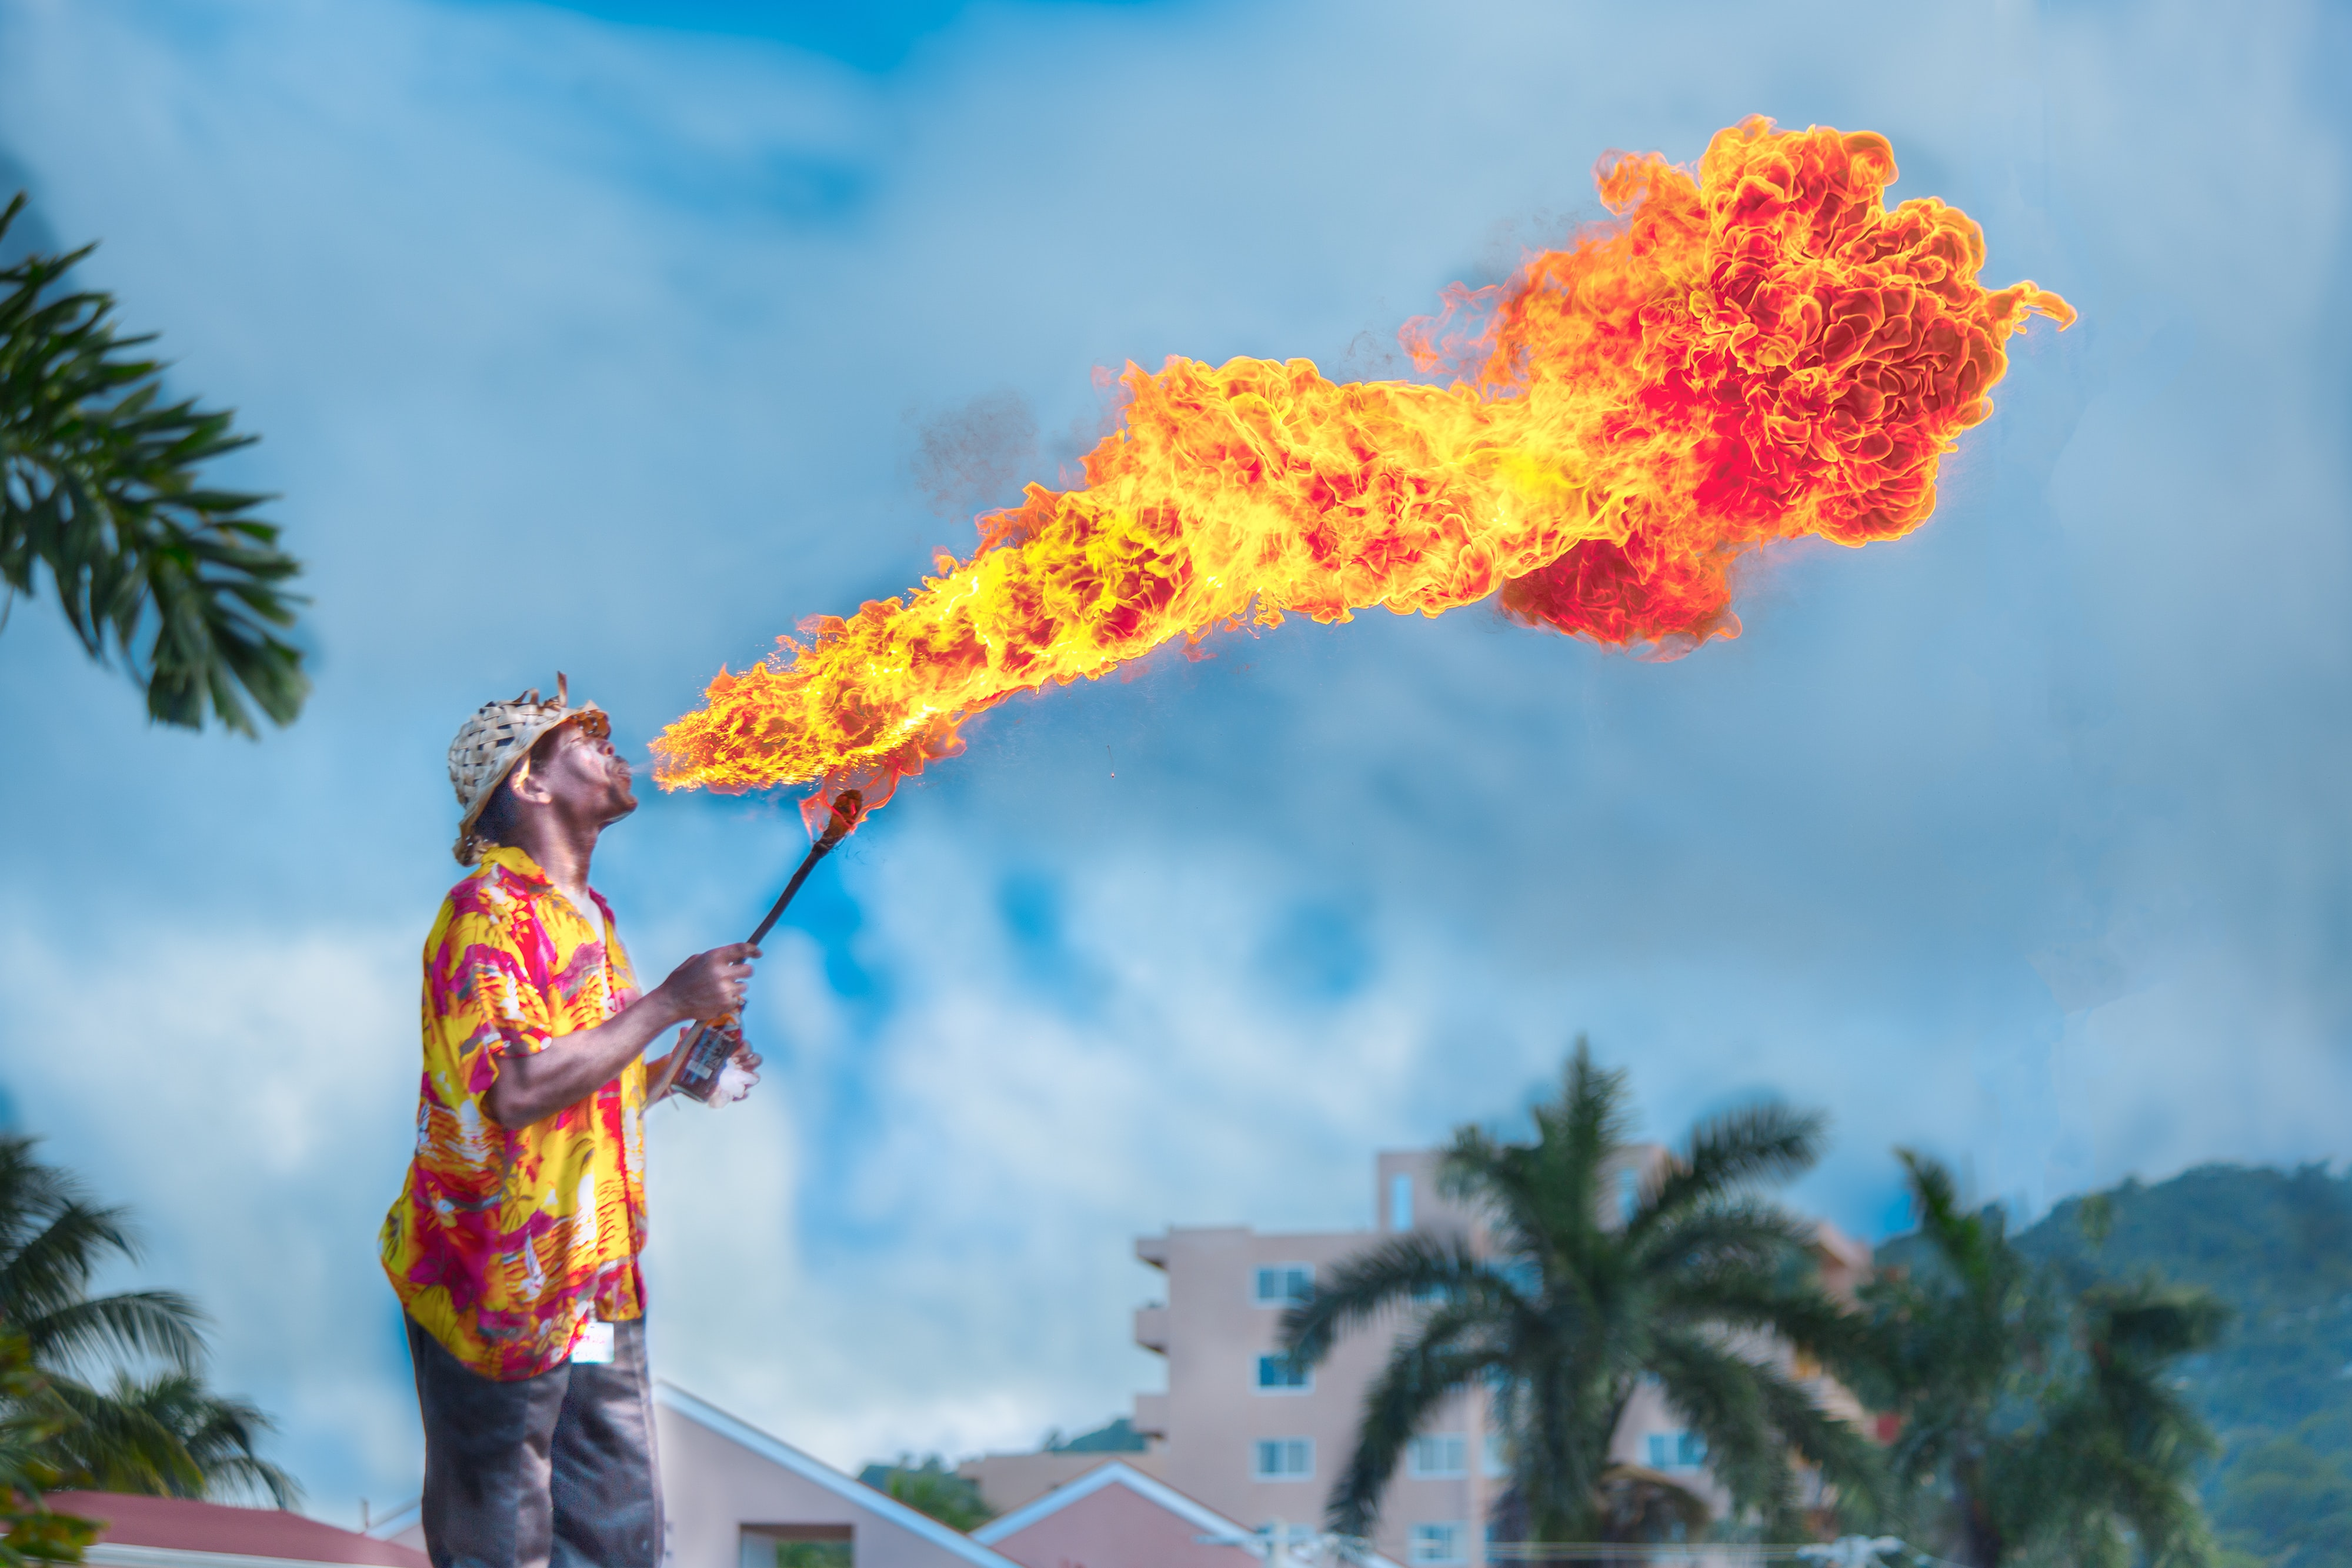 man blowing gas to make fire